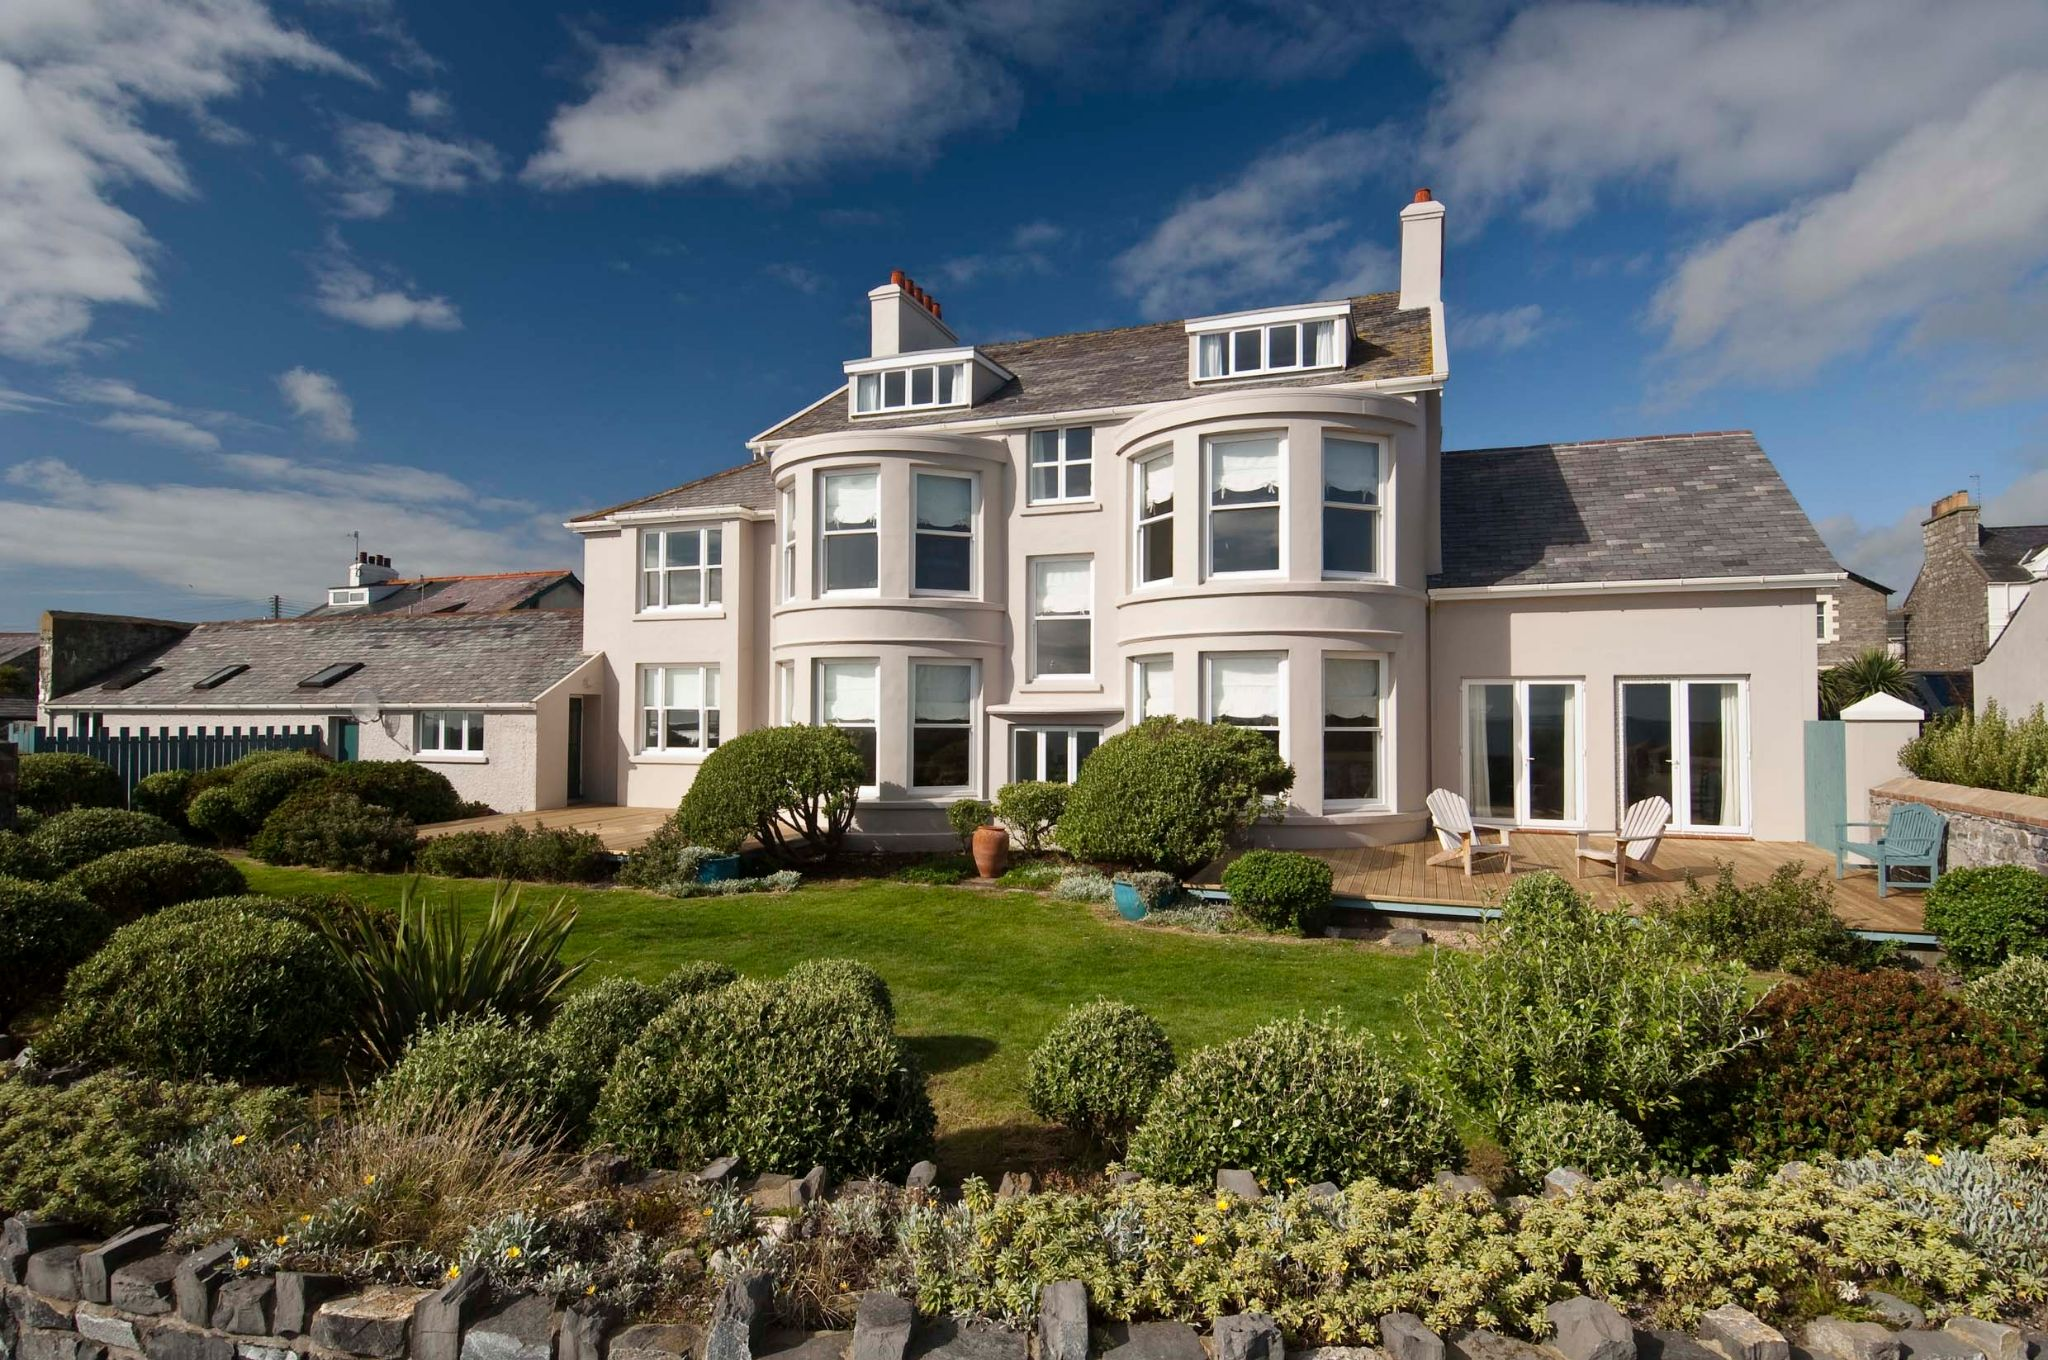 6 bedroom detached house For Sale in Castletown - Photograph 2